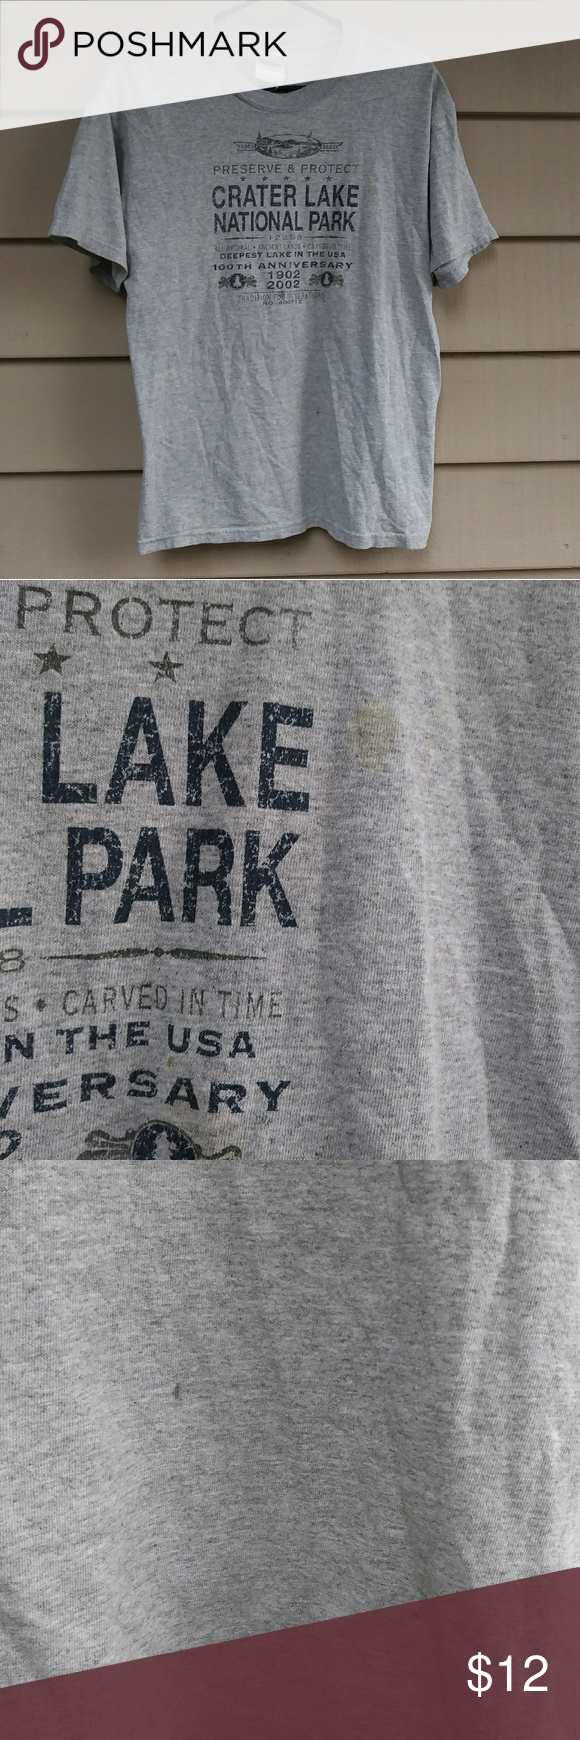 Crater Lake Oregon T Shirt medium Has a couple discolorations. 25 long/20 across chest INV#10 Shirts Tees - Short Sleeve #craterlakeoregon Crater Lake Oregon T Shirt medium Has a couple discolorations. 25 long/20 across chest INV#10 Shirts Tees - Short Sleeve #craterlakeoregon